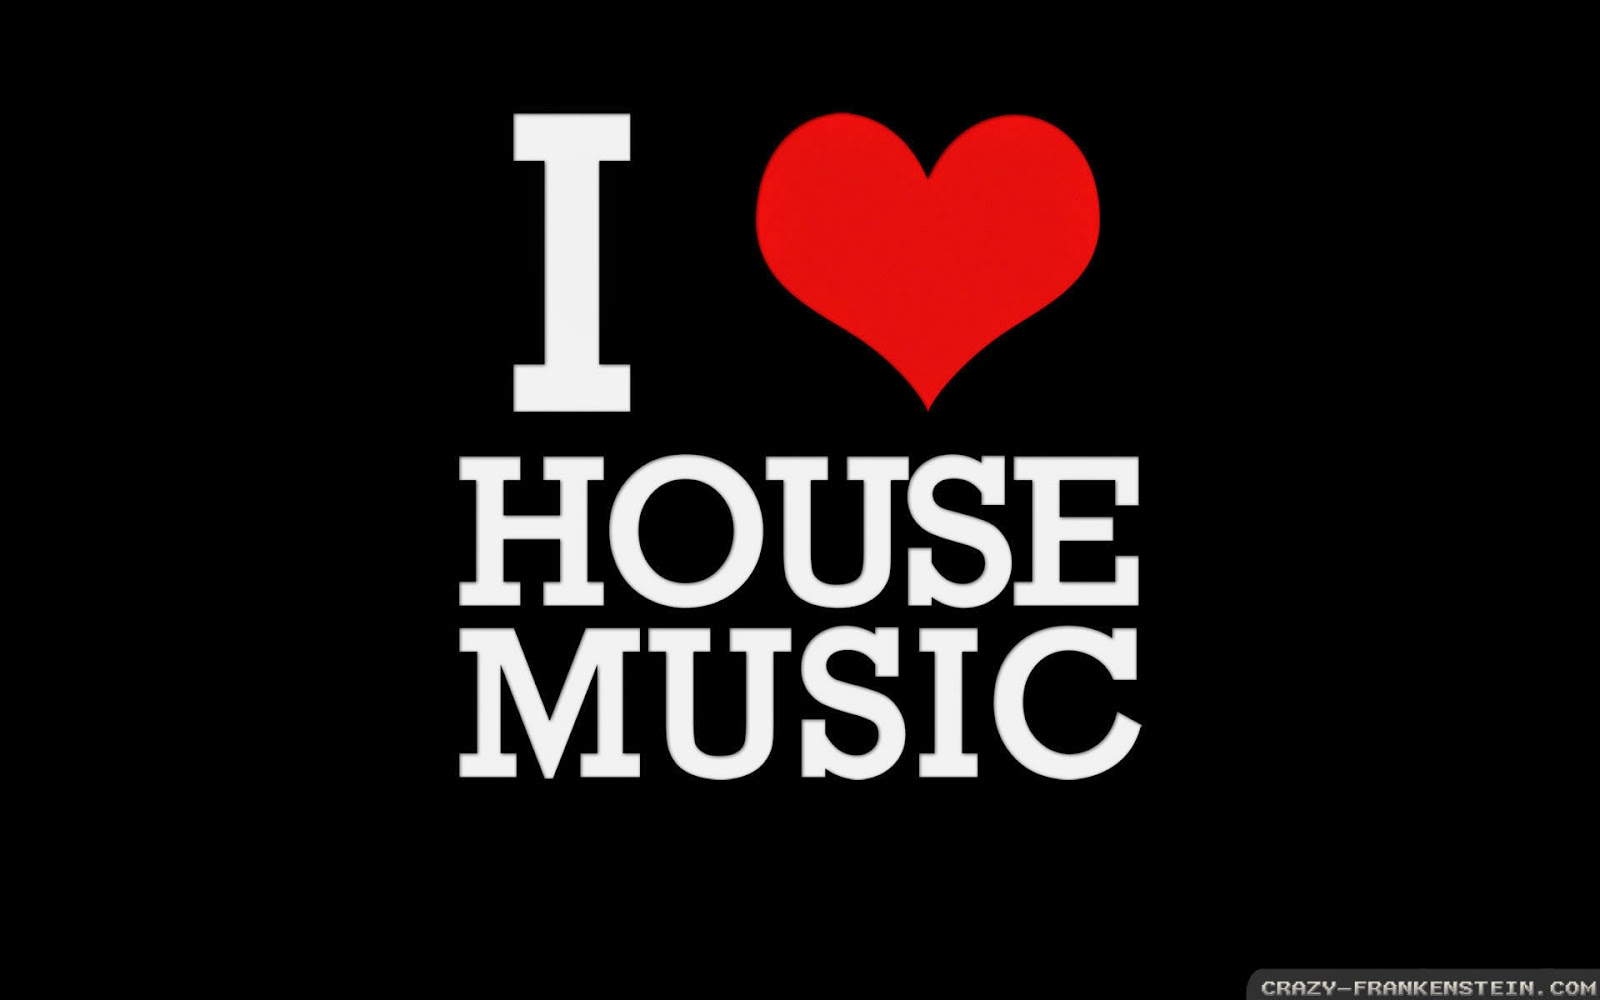 Download wallpaper house music electro dance music feact for House music 2014